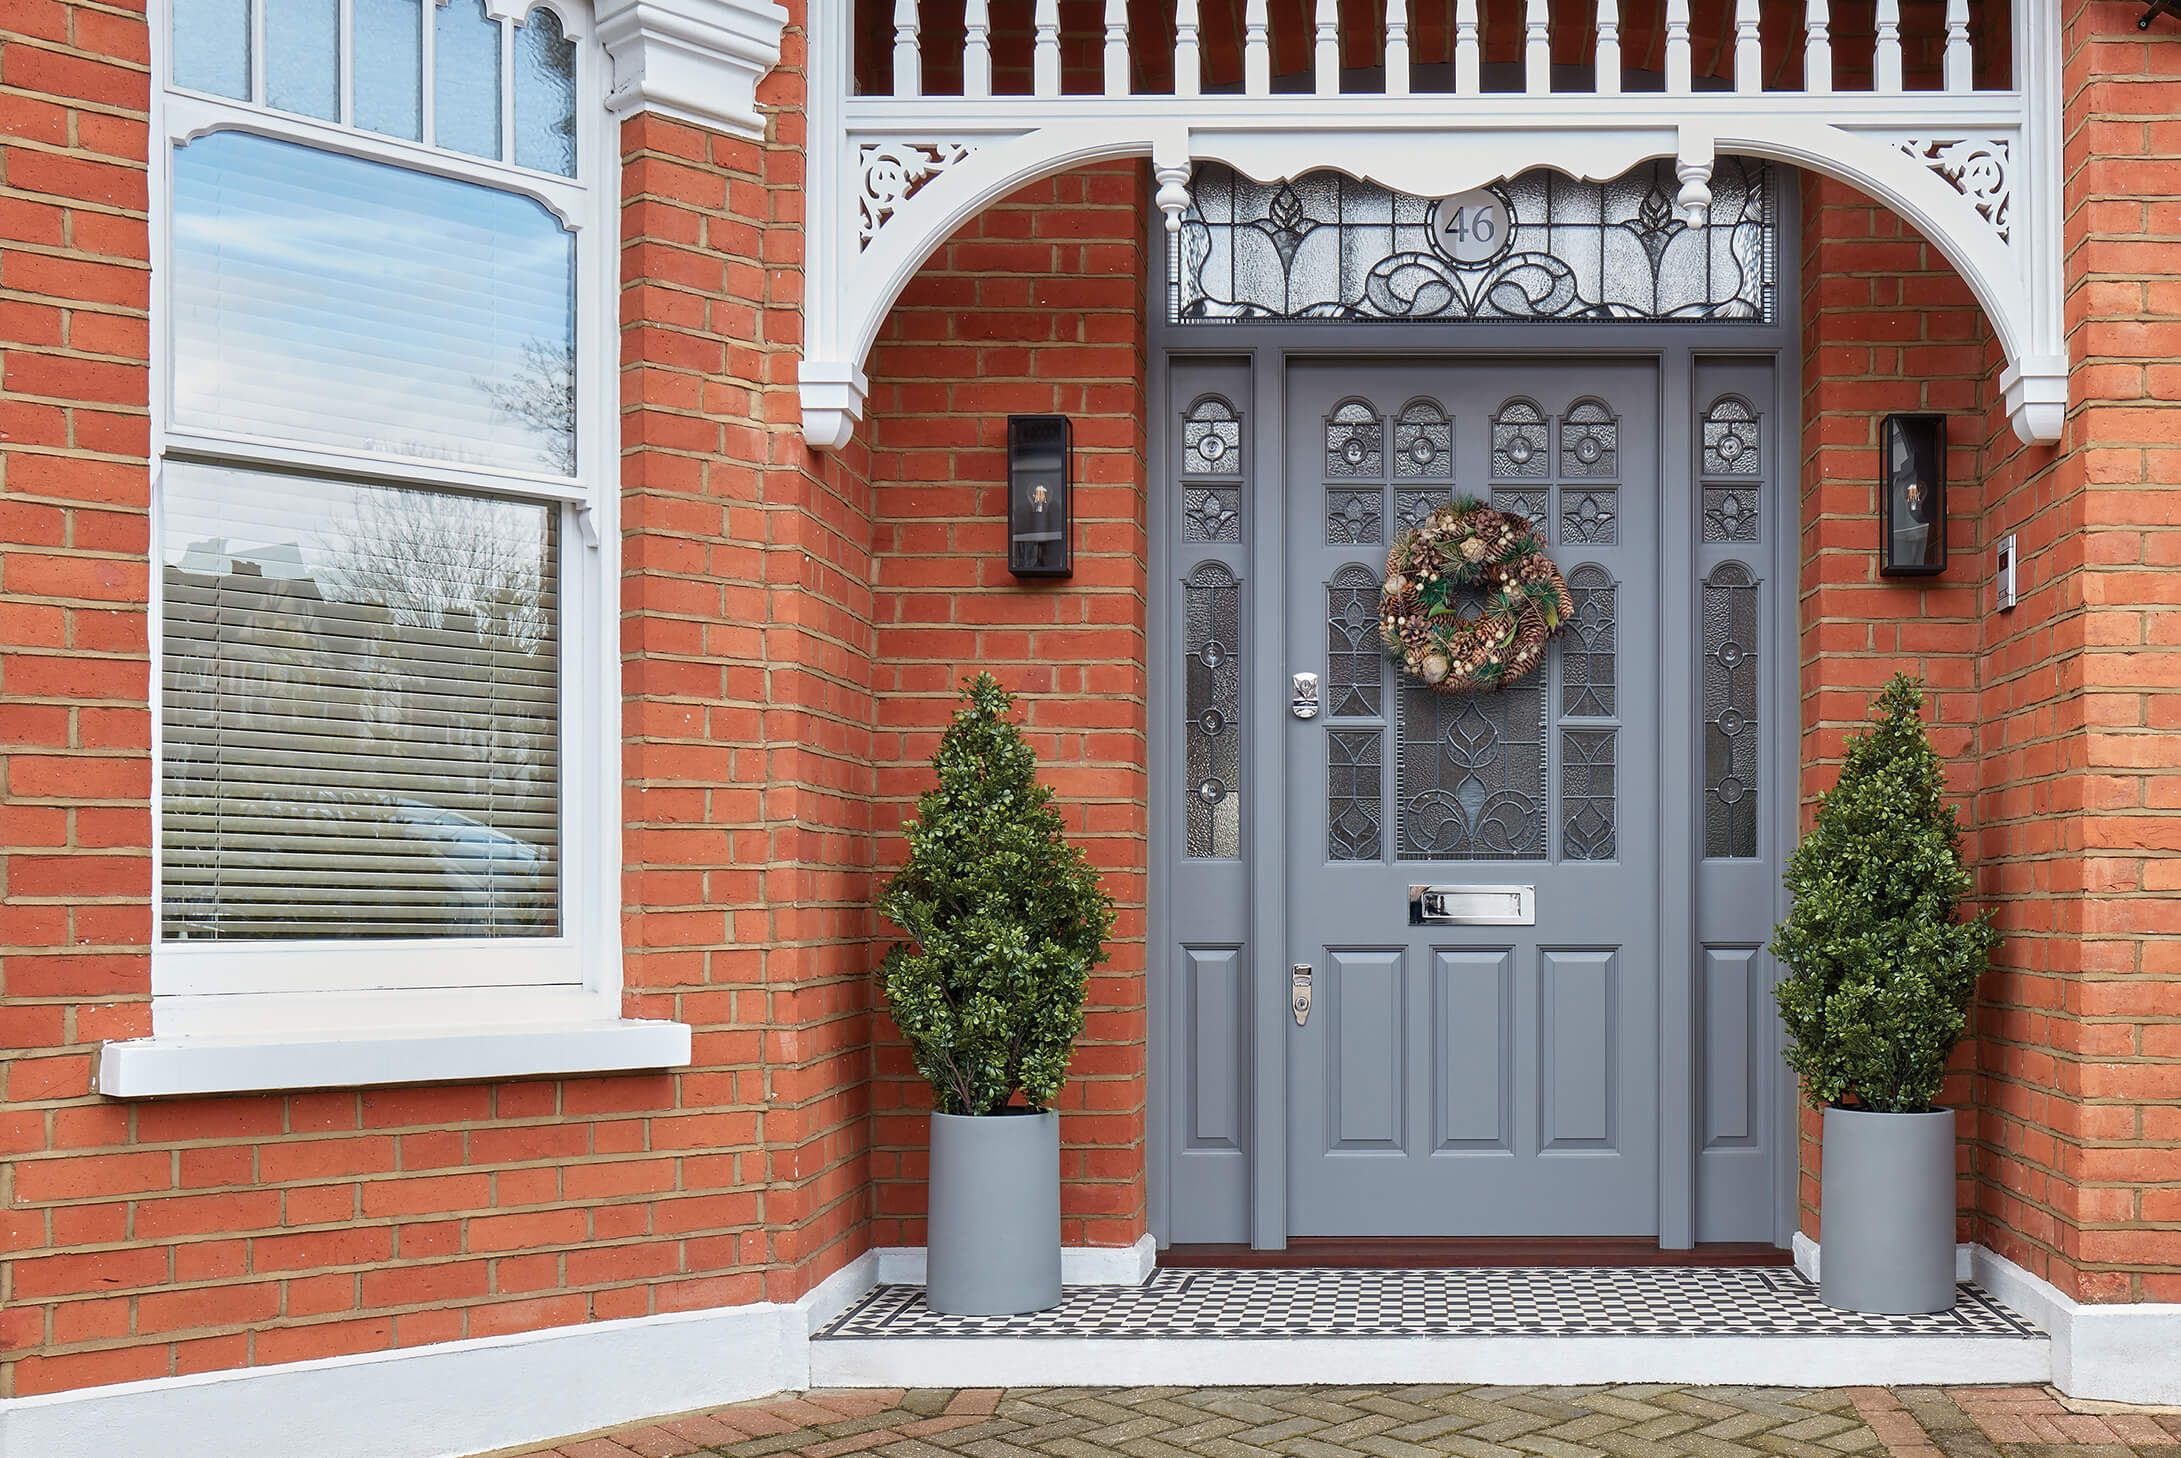 Gray Front Door With Glass Panels Transoms And Sidelights Porch Plants Red Brick Walls In 2020 Victorian Front Doors Traditional Front Doors Garage Door Styles